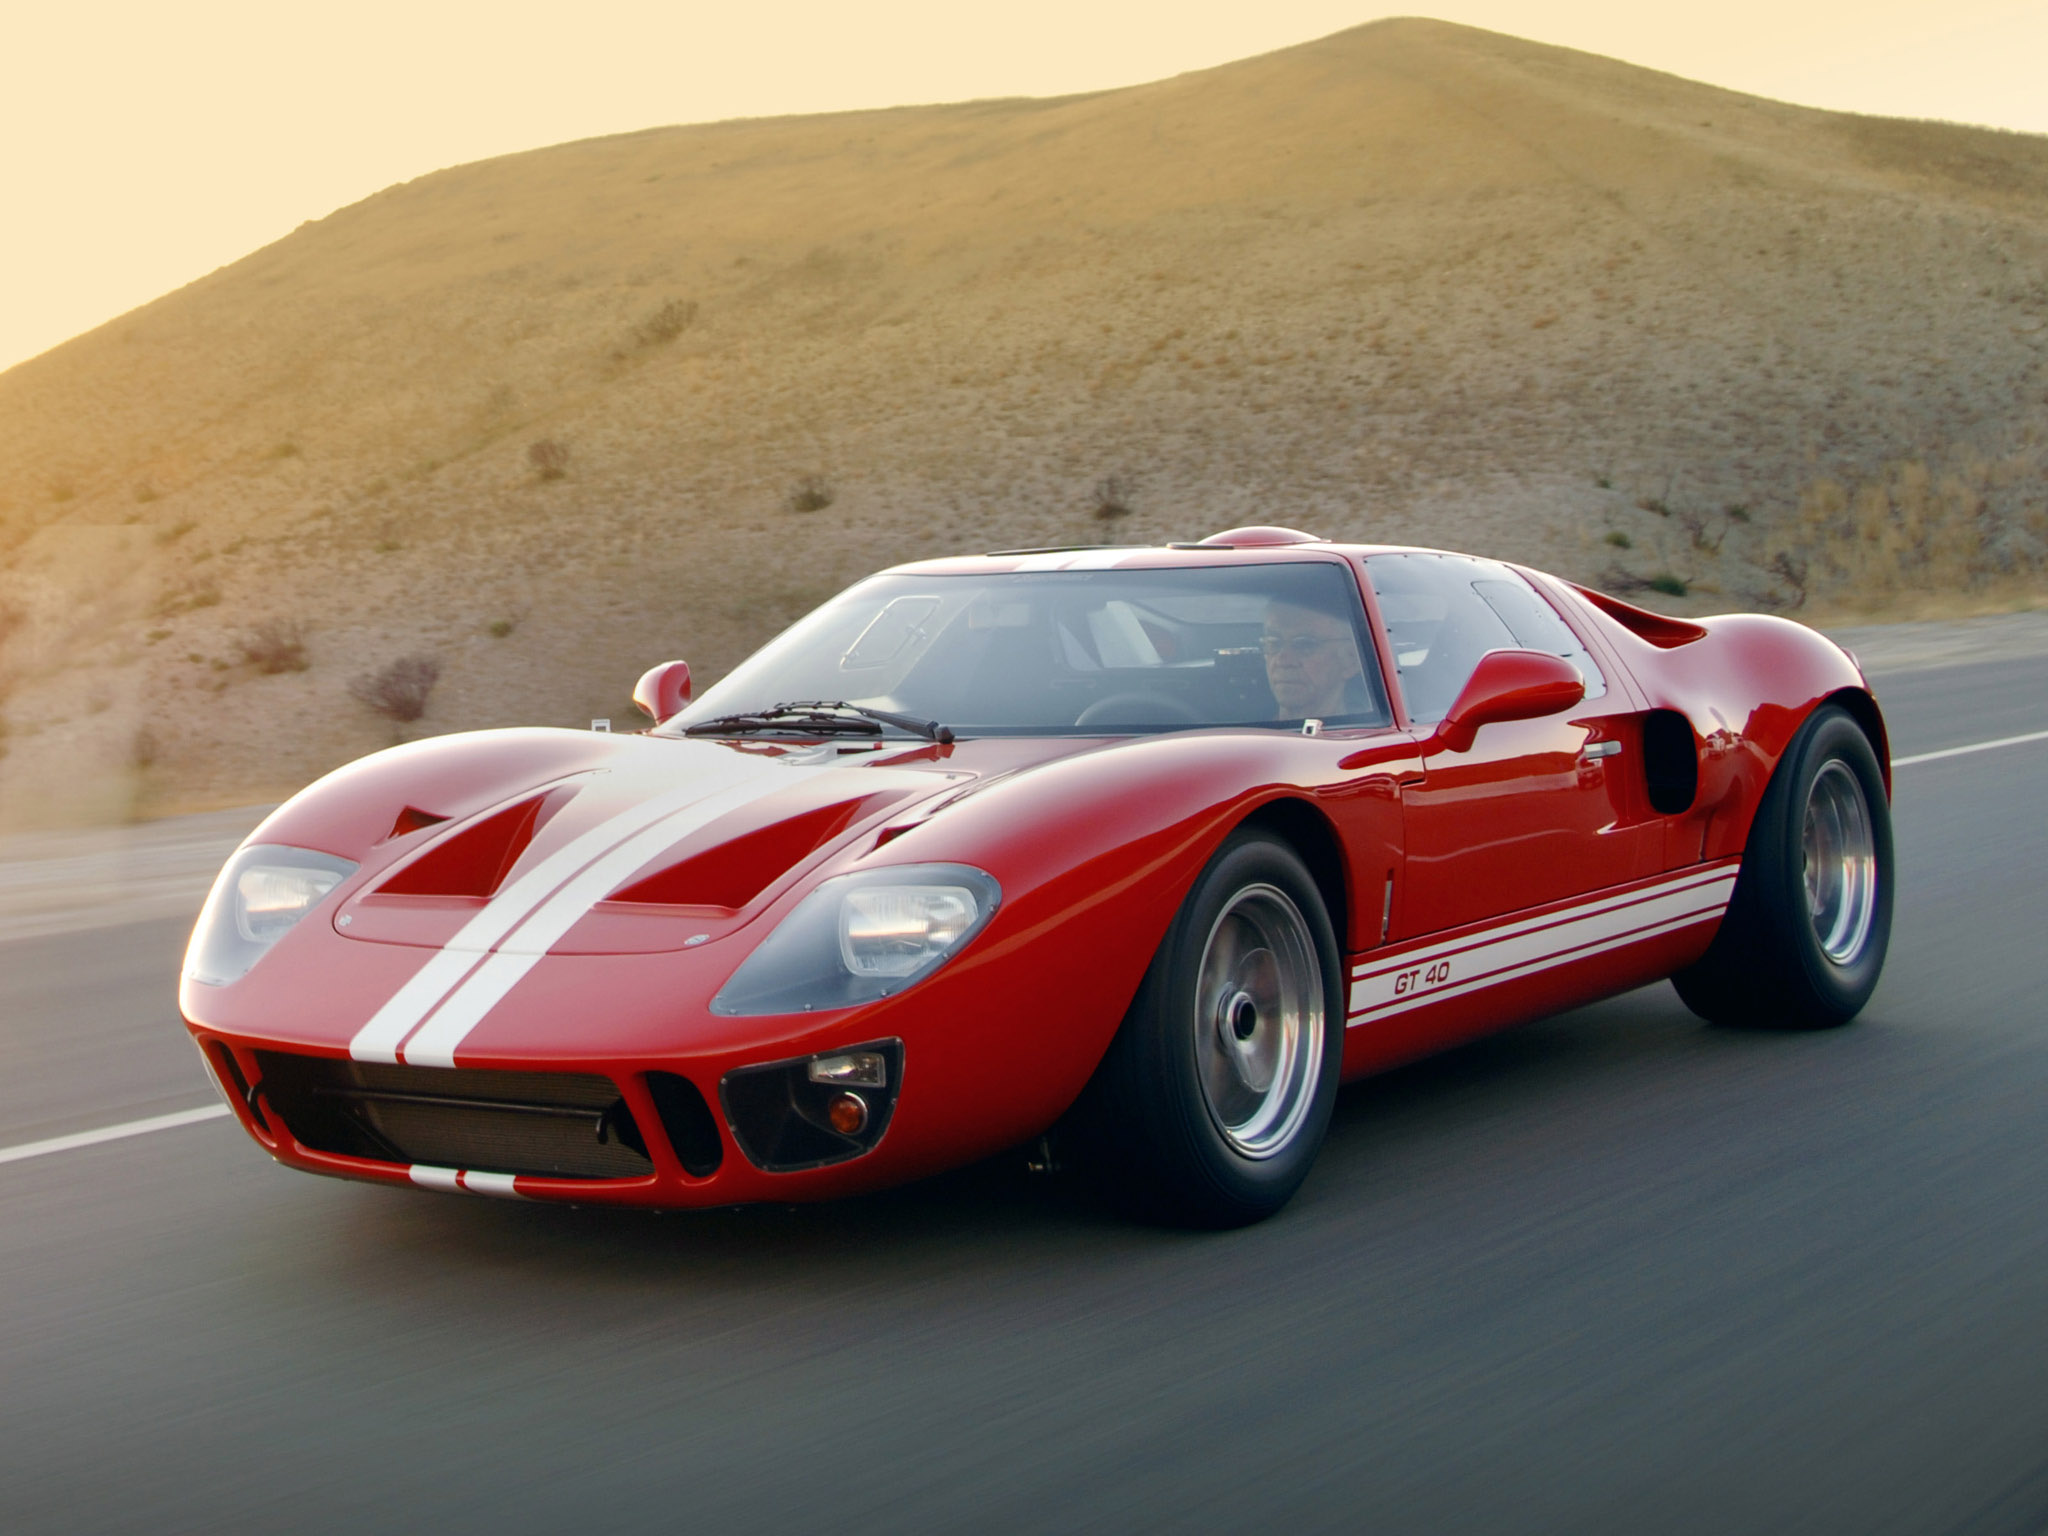 2007 Superformance Ford GT40 supercar supercars wallpaper